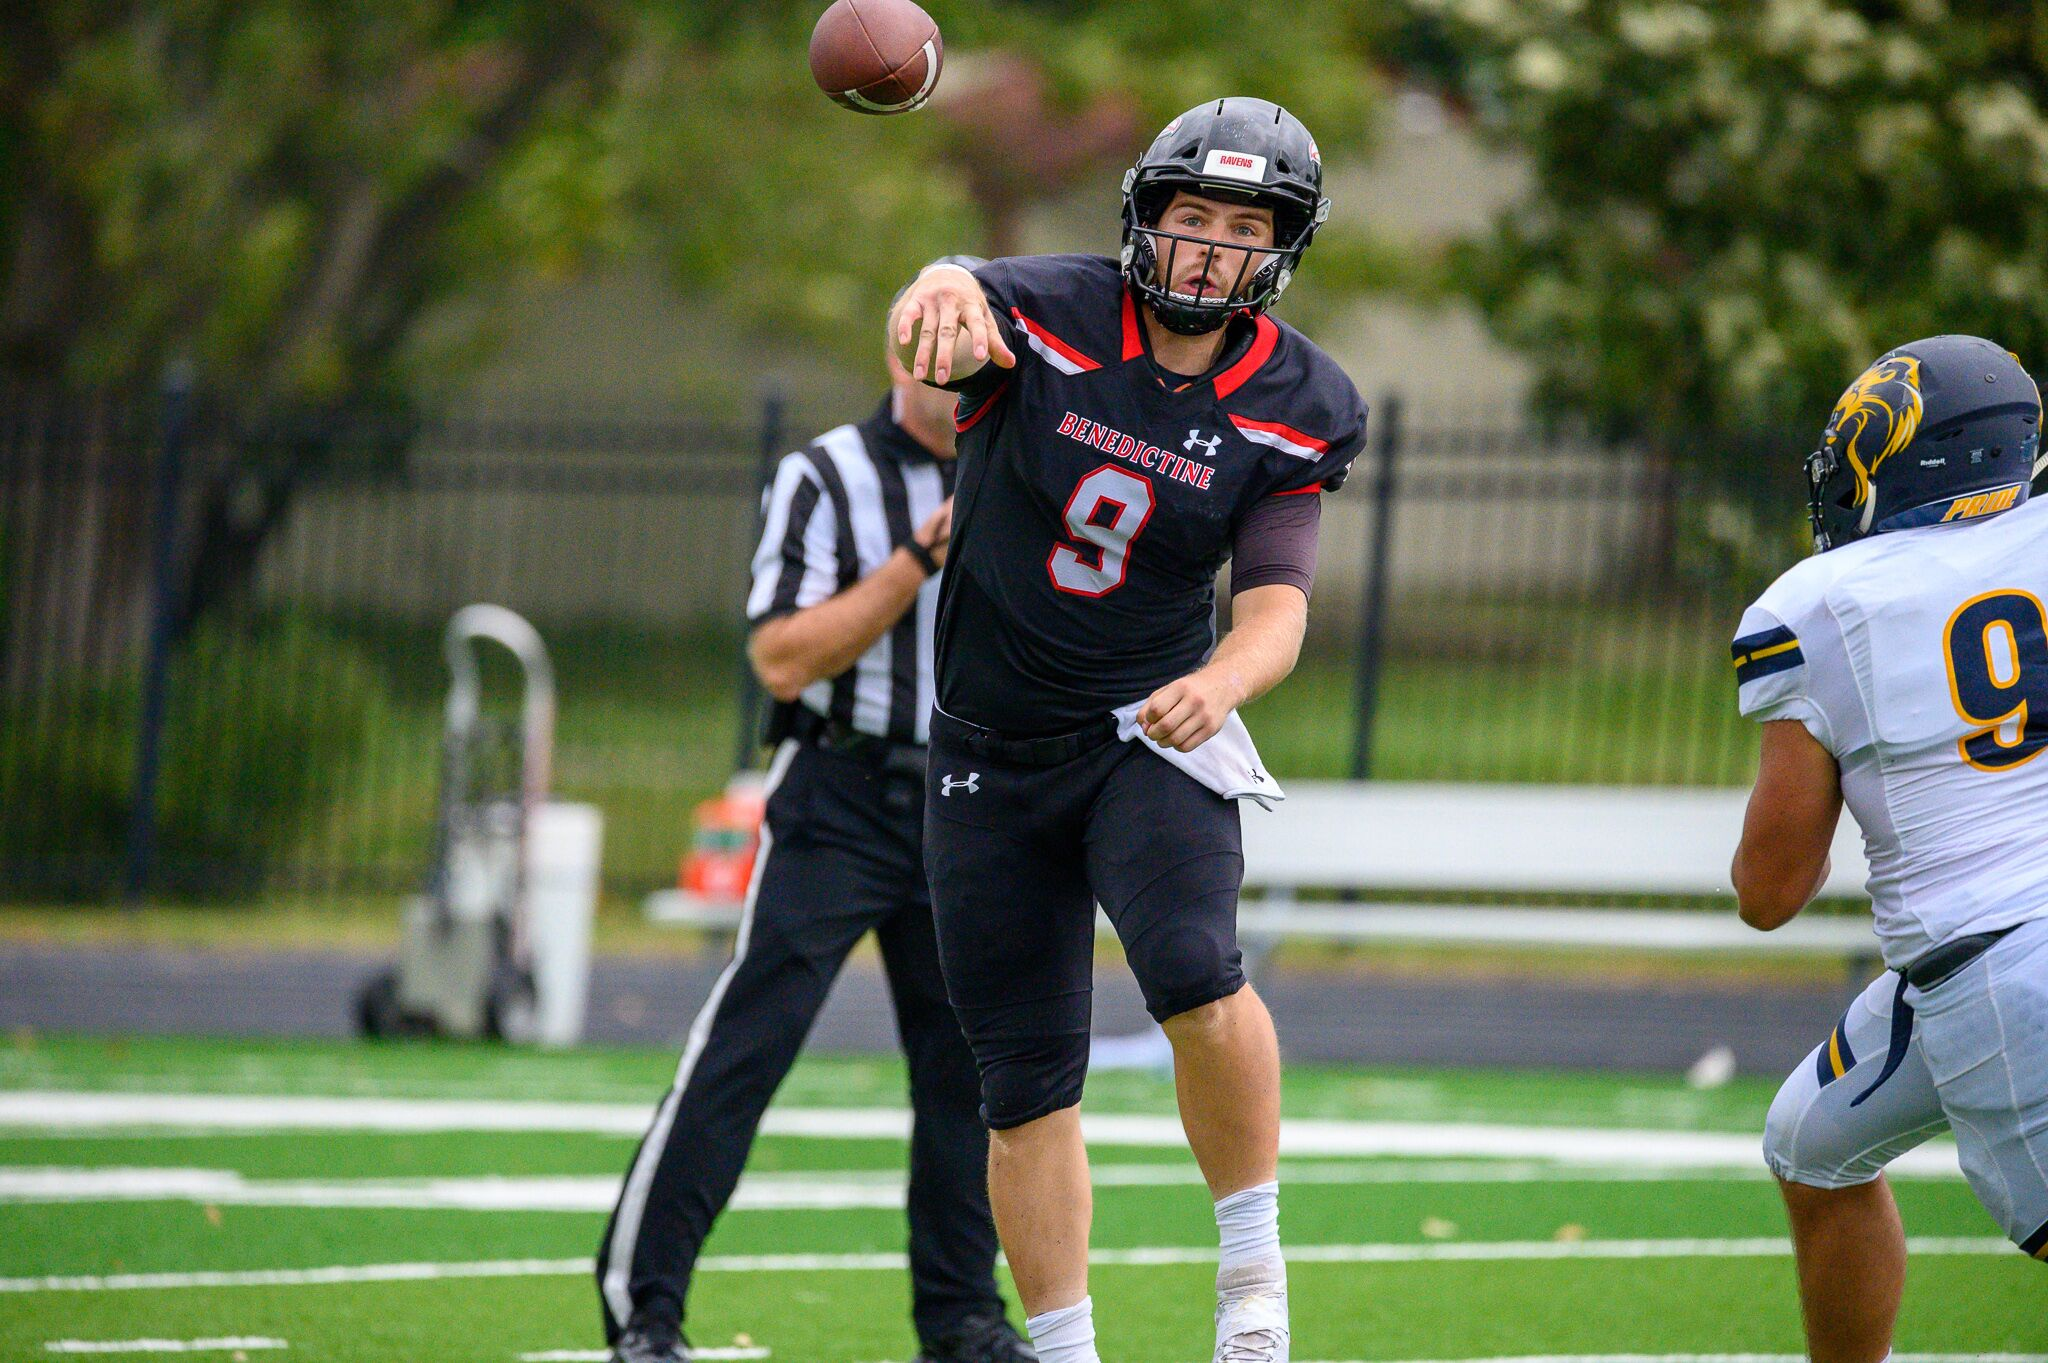 Ravens QB Shaefer Schuetz threw his first TD pass of the 2019 season on September 21, vs. Clarke in the Ravens 73-14 victory.  Schuetz played only the first half last Saturday at Baker because of an injured foot. (Photo by Jeremy Kaczor)